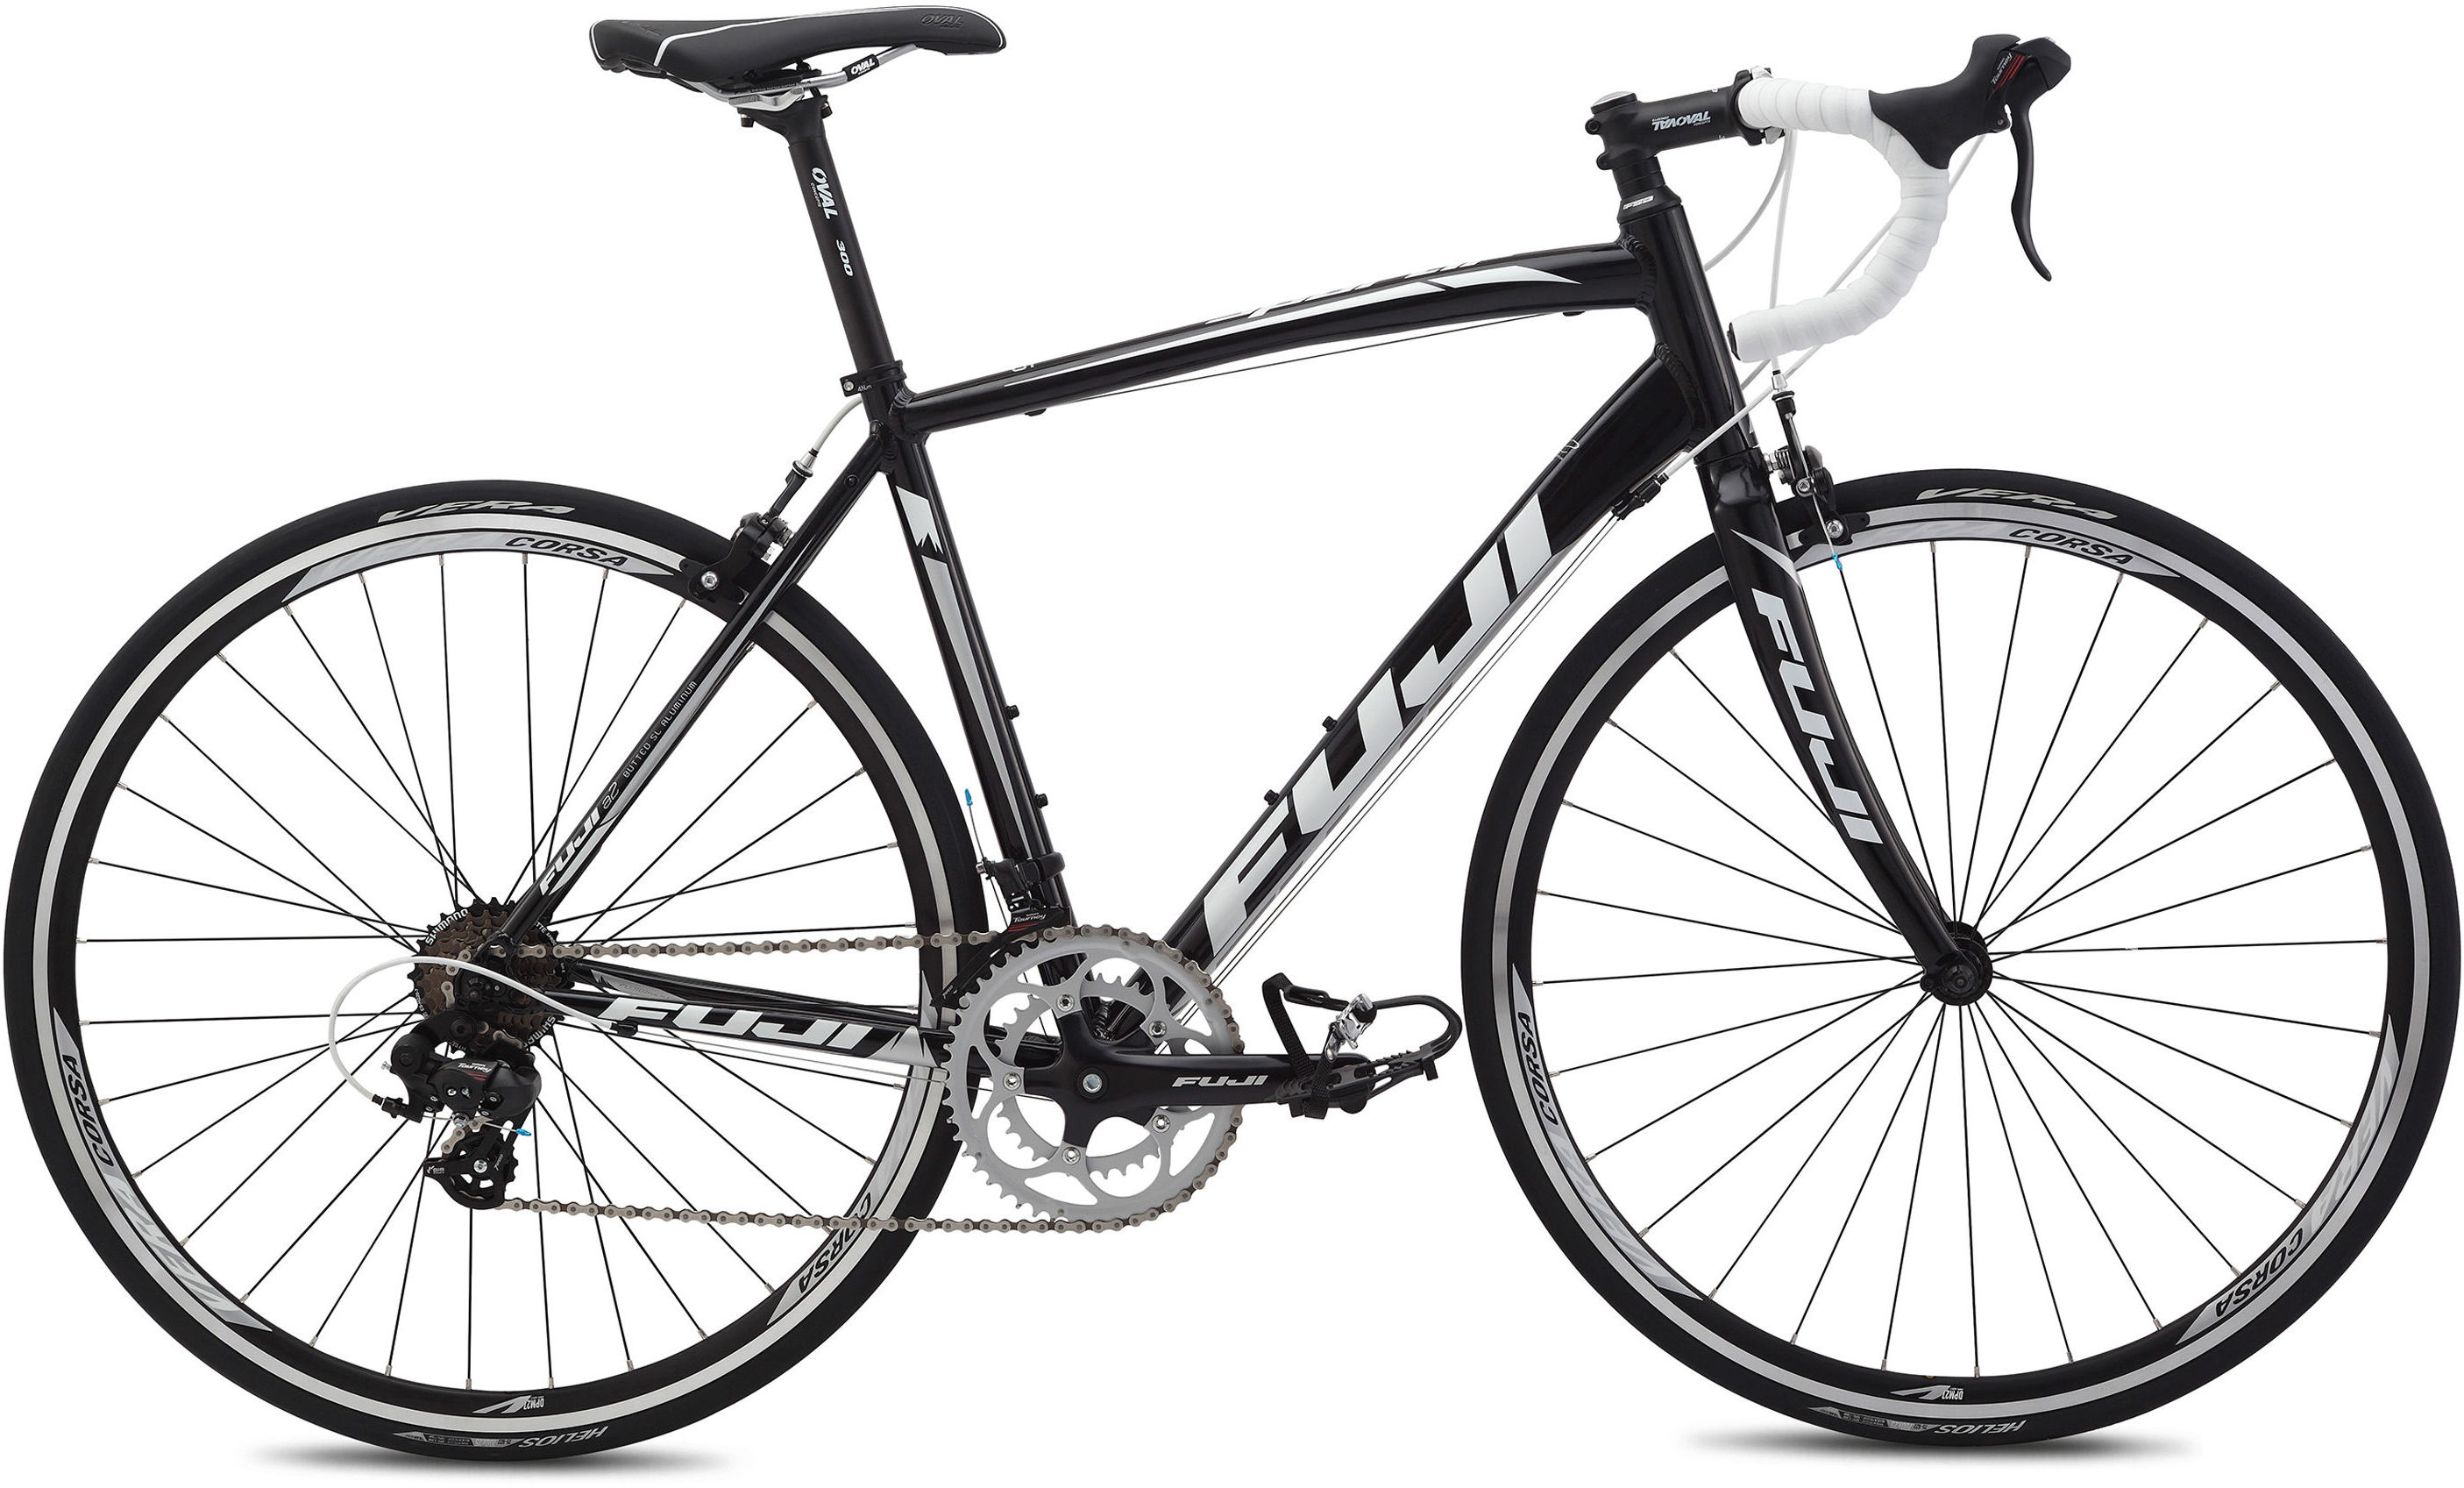 Fuji Sportif 2 5 Compact Review